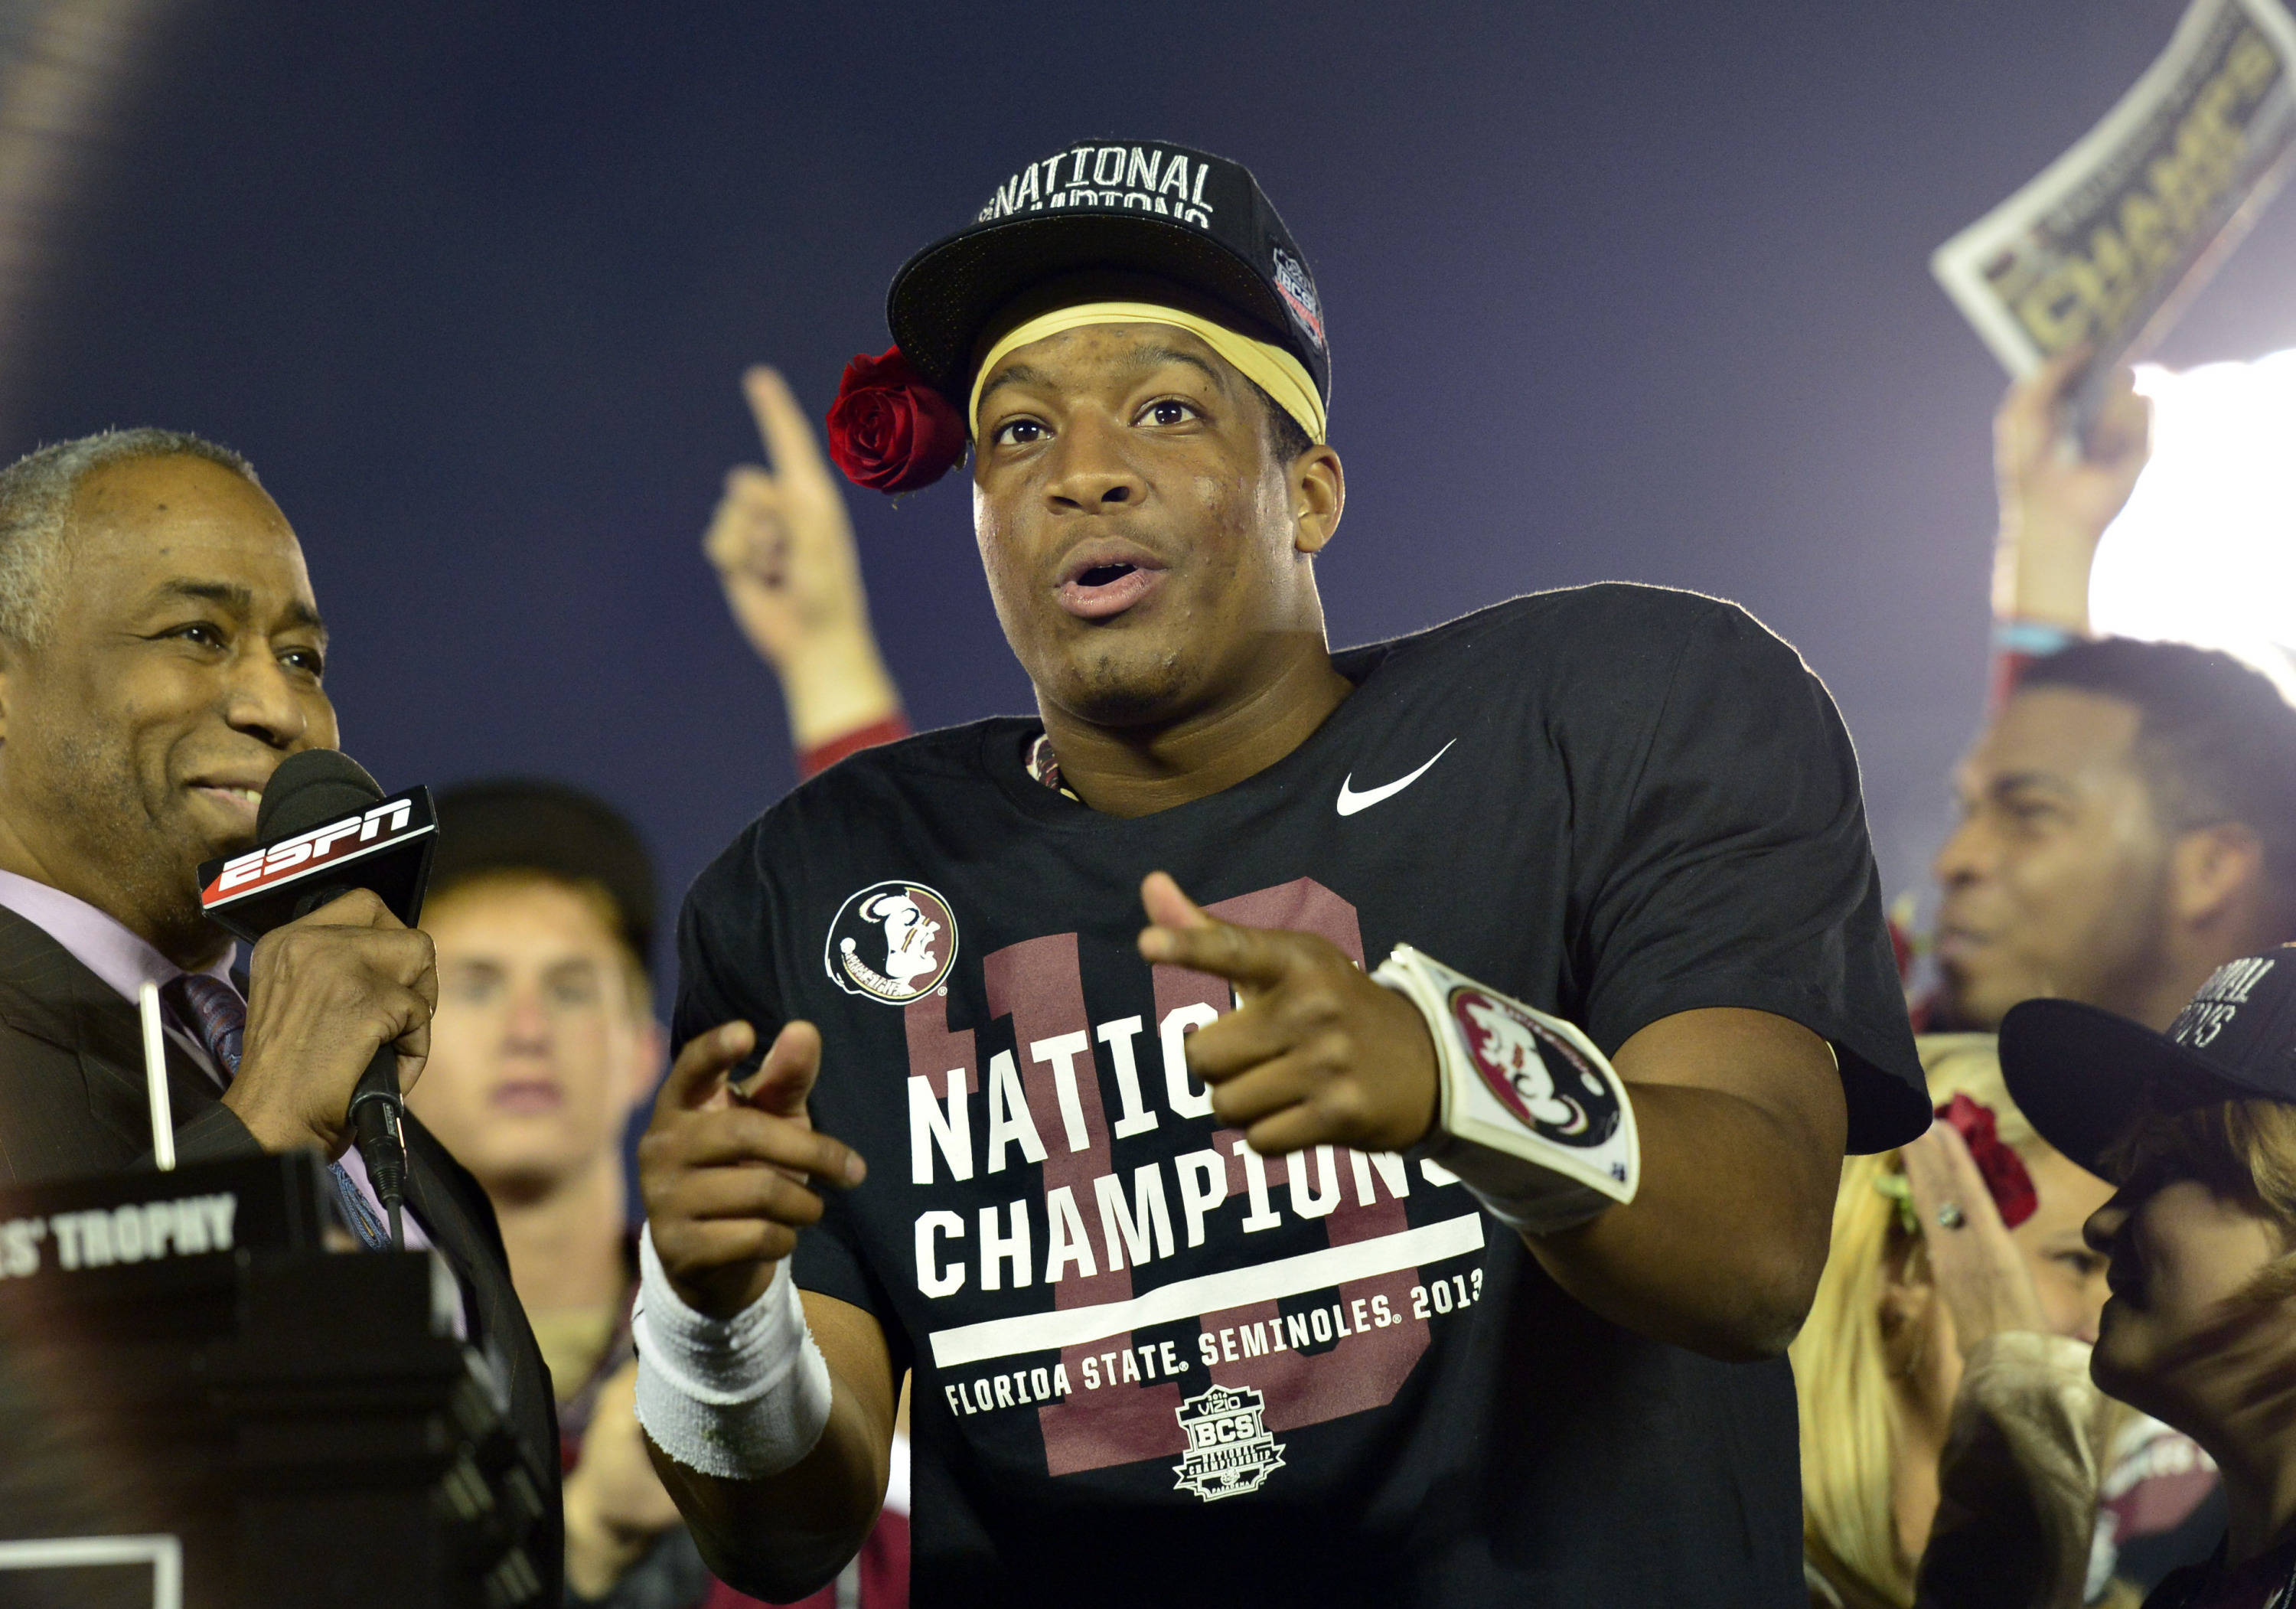 Jan 6, 2014; Pasadena, CA, USA; Florida State Seminoles quarterback Jameis Winston (5) celebrates after winning the 2014 BCS National Championship game against Auburn Tigers 34-31 at the Rose Bowl.  Mandatory Credit: Richard Mackson-USA TODAY Sports